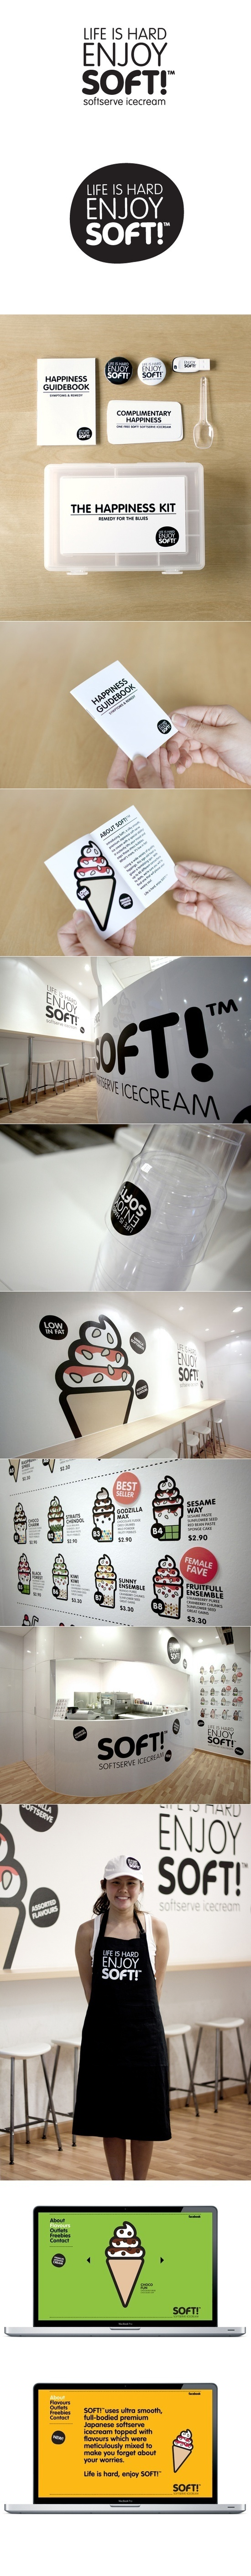 SoftTM branding by Bravo Company #cream #ice #branding #retail